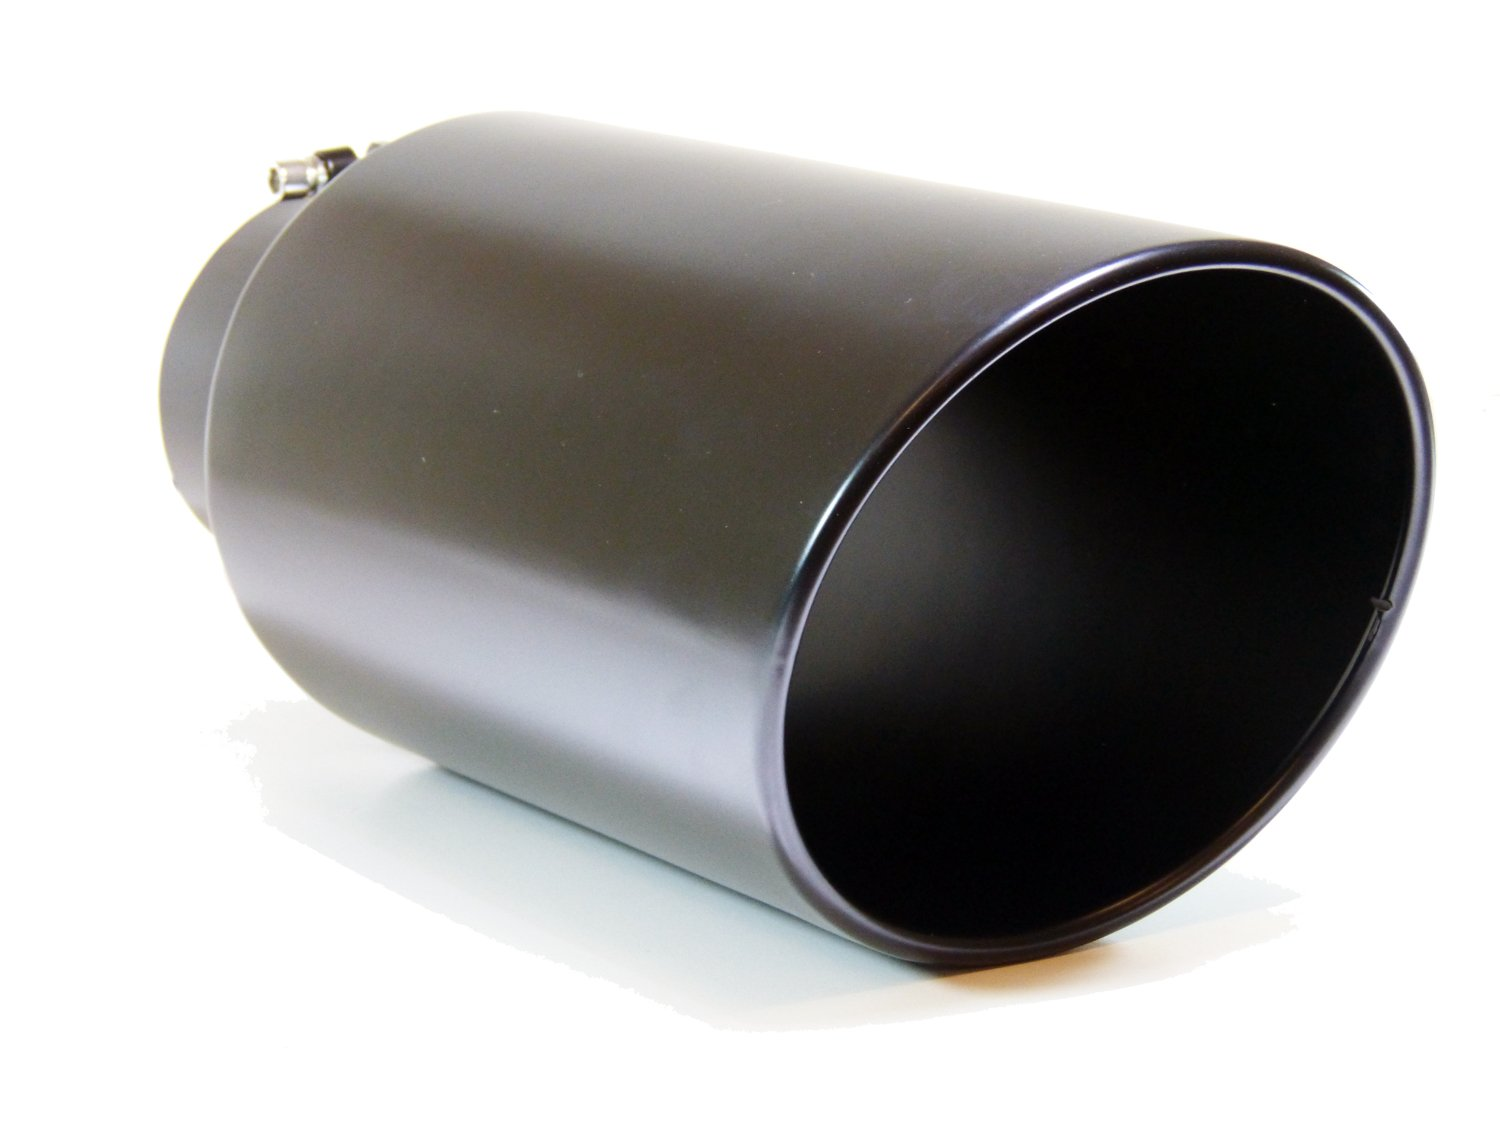 GENSSI Muffler Tip Exhaust Tail Pipe Black (ID: 5 OD: 8 Inch Length: 18 Inch Angled Roll Bolt)